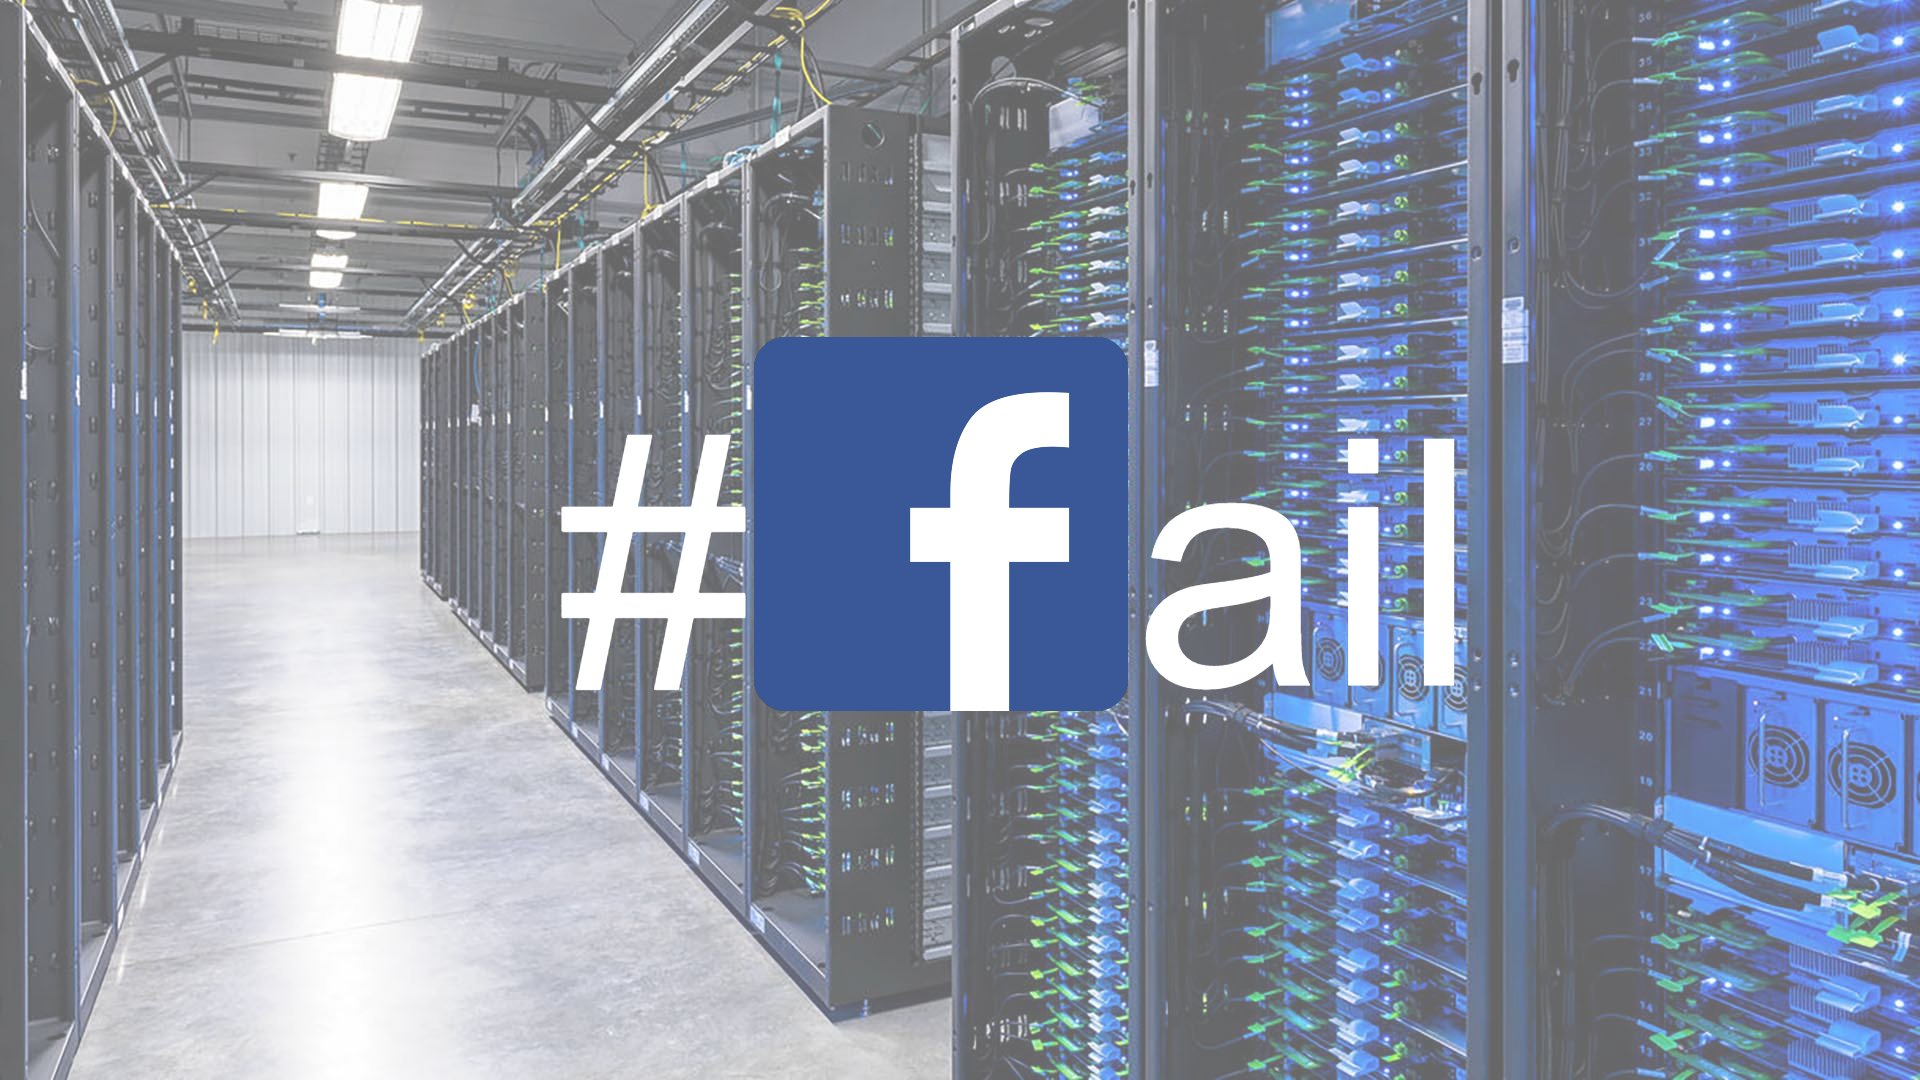 Lessons Learned from the Facebook Outage